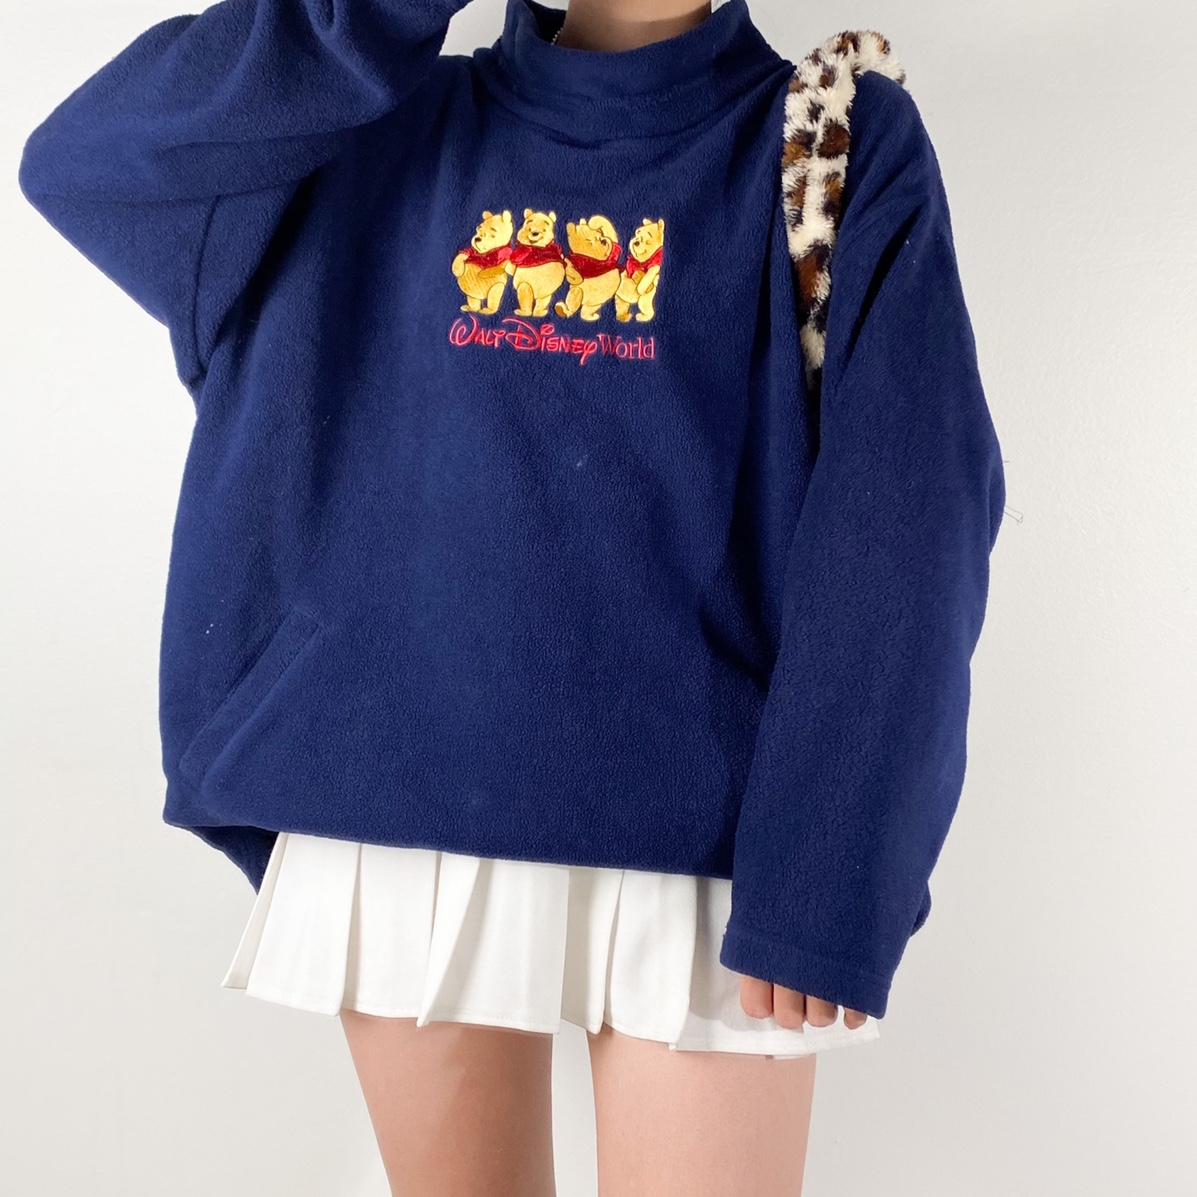 🍯 Walt Disney World Pooh Bear Fleece Sweatshirt 🍯